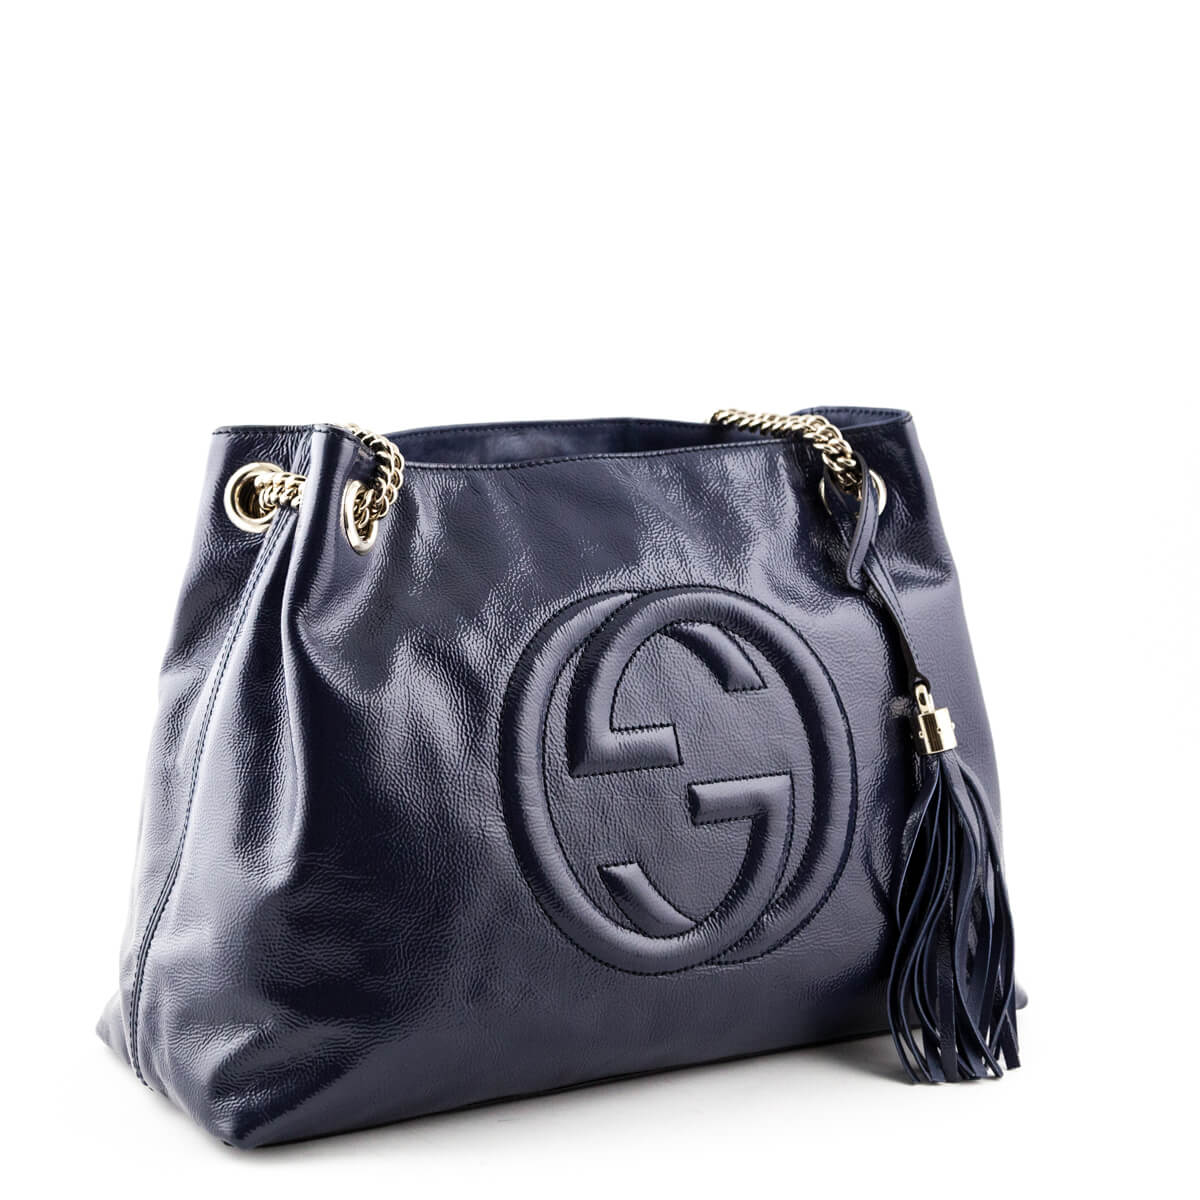 19fd98d5bbe ... Gucci Midnight Blue Patent Medium Soho Shoulder Bag - LOVE that BAG - Preowned  Authentic Designer ...